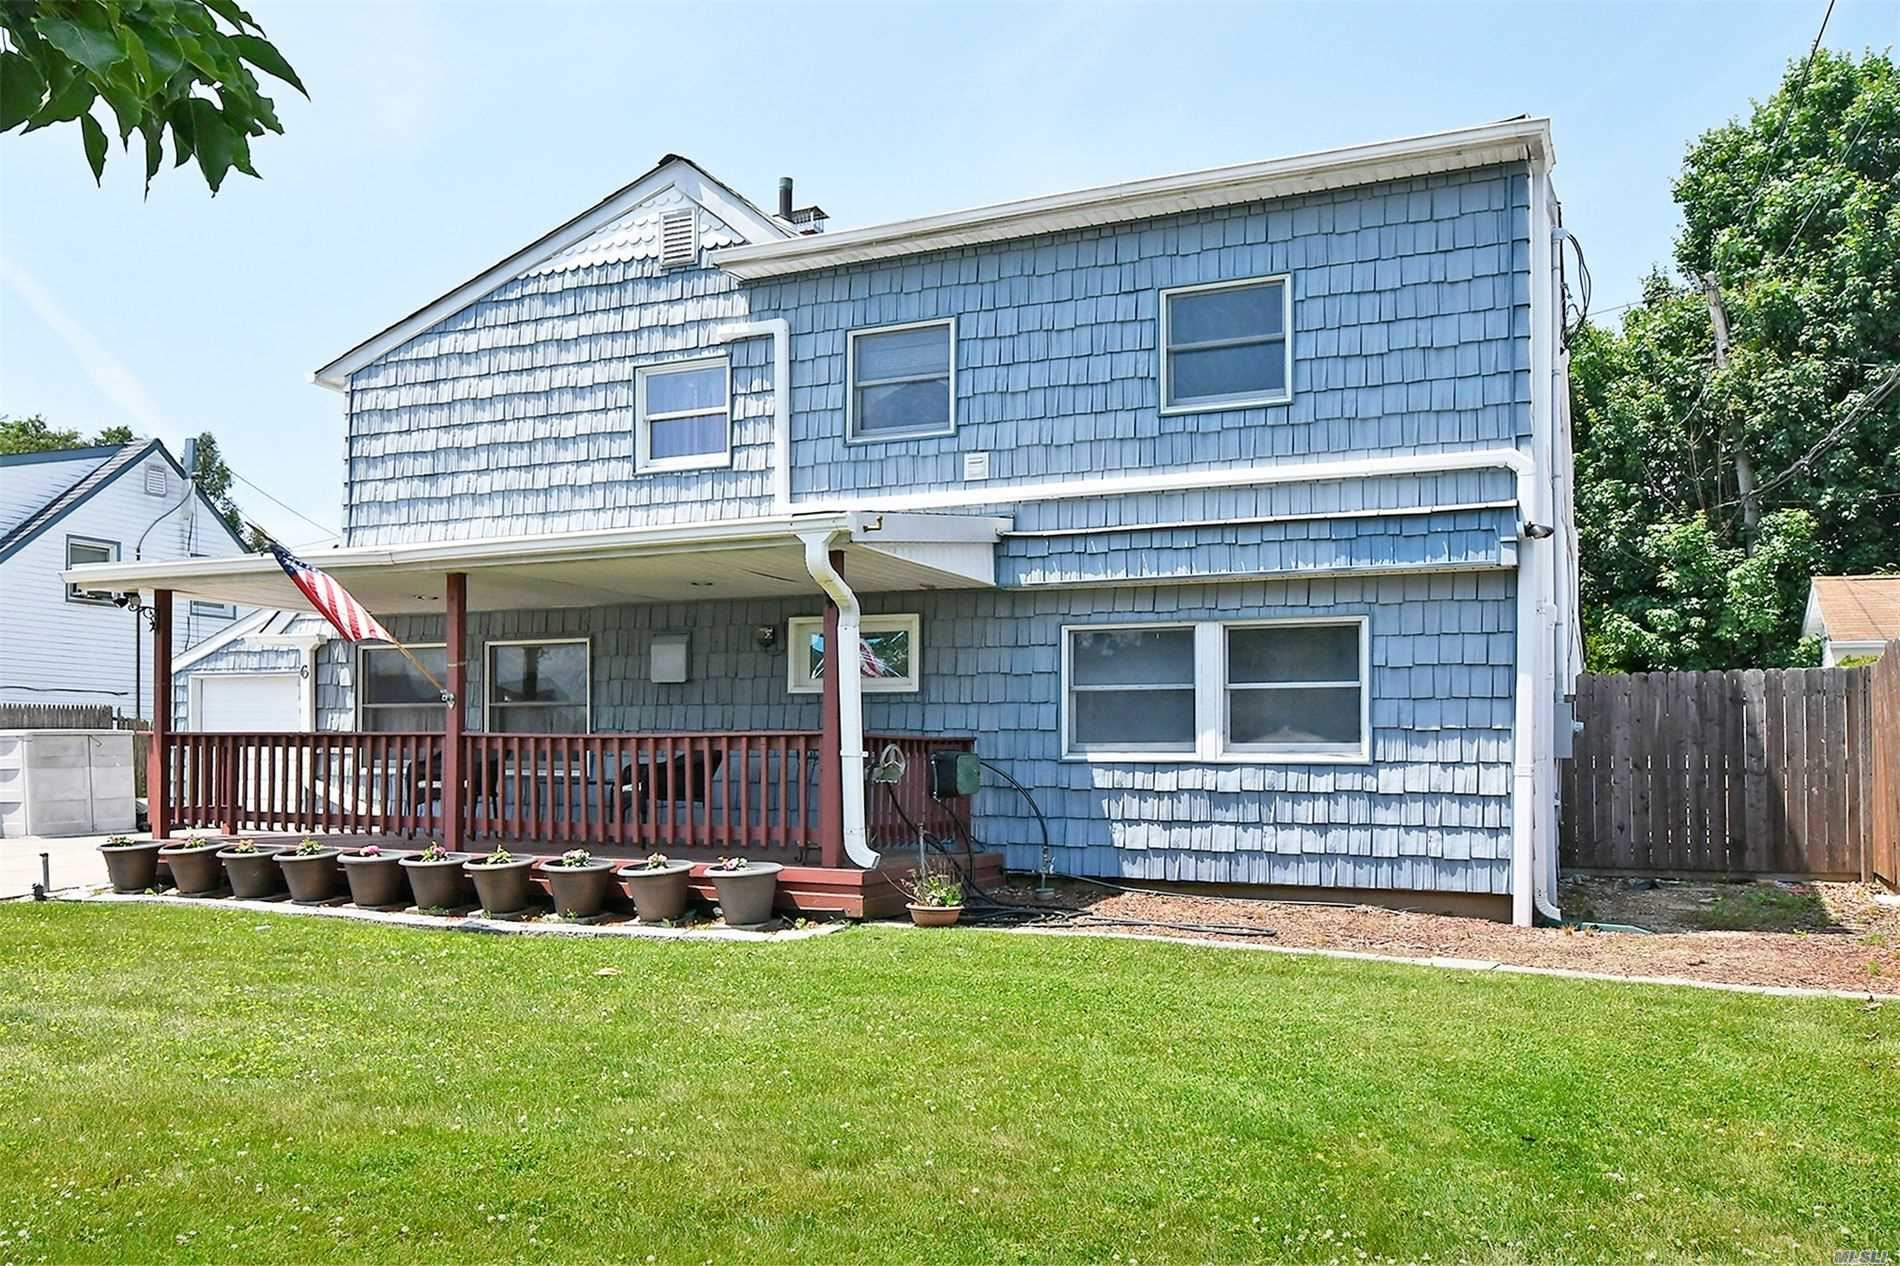 6 Long Ln, Levittown, NY 11756 - MLS#: 3218804